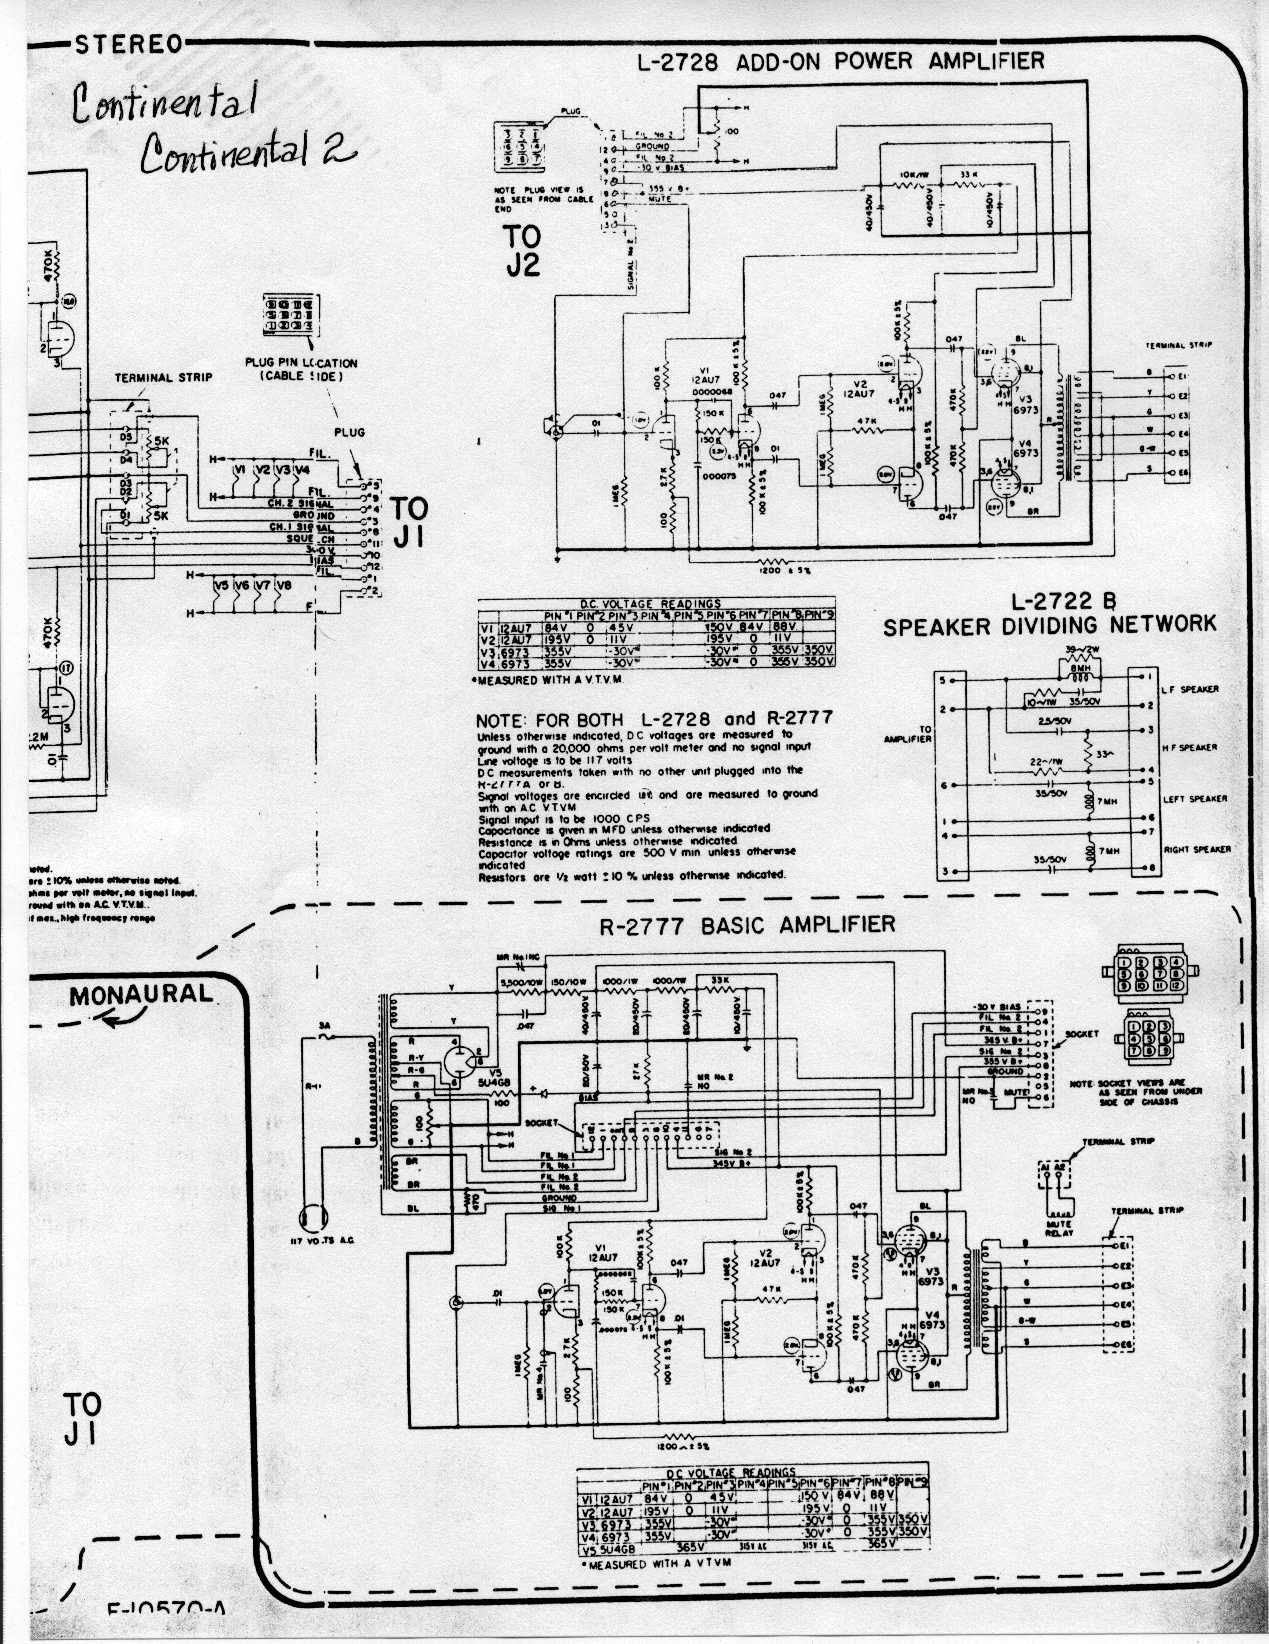 Correct Wiring Of Audio Output Transformer Ami Continental 2 And Amplifier Output Balance